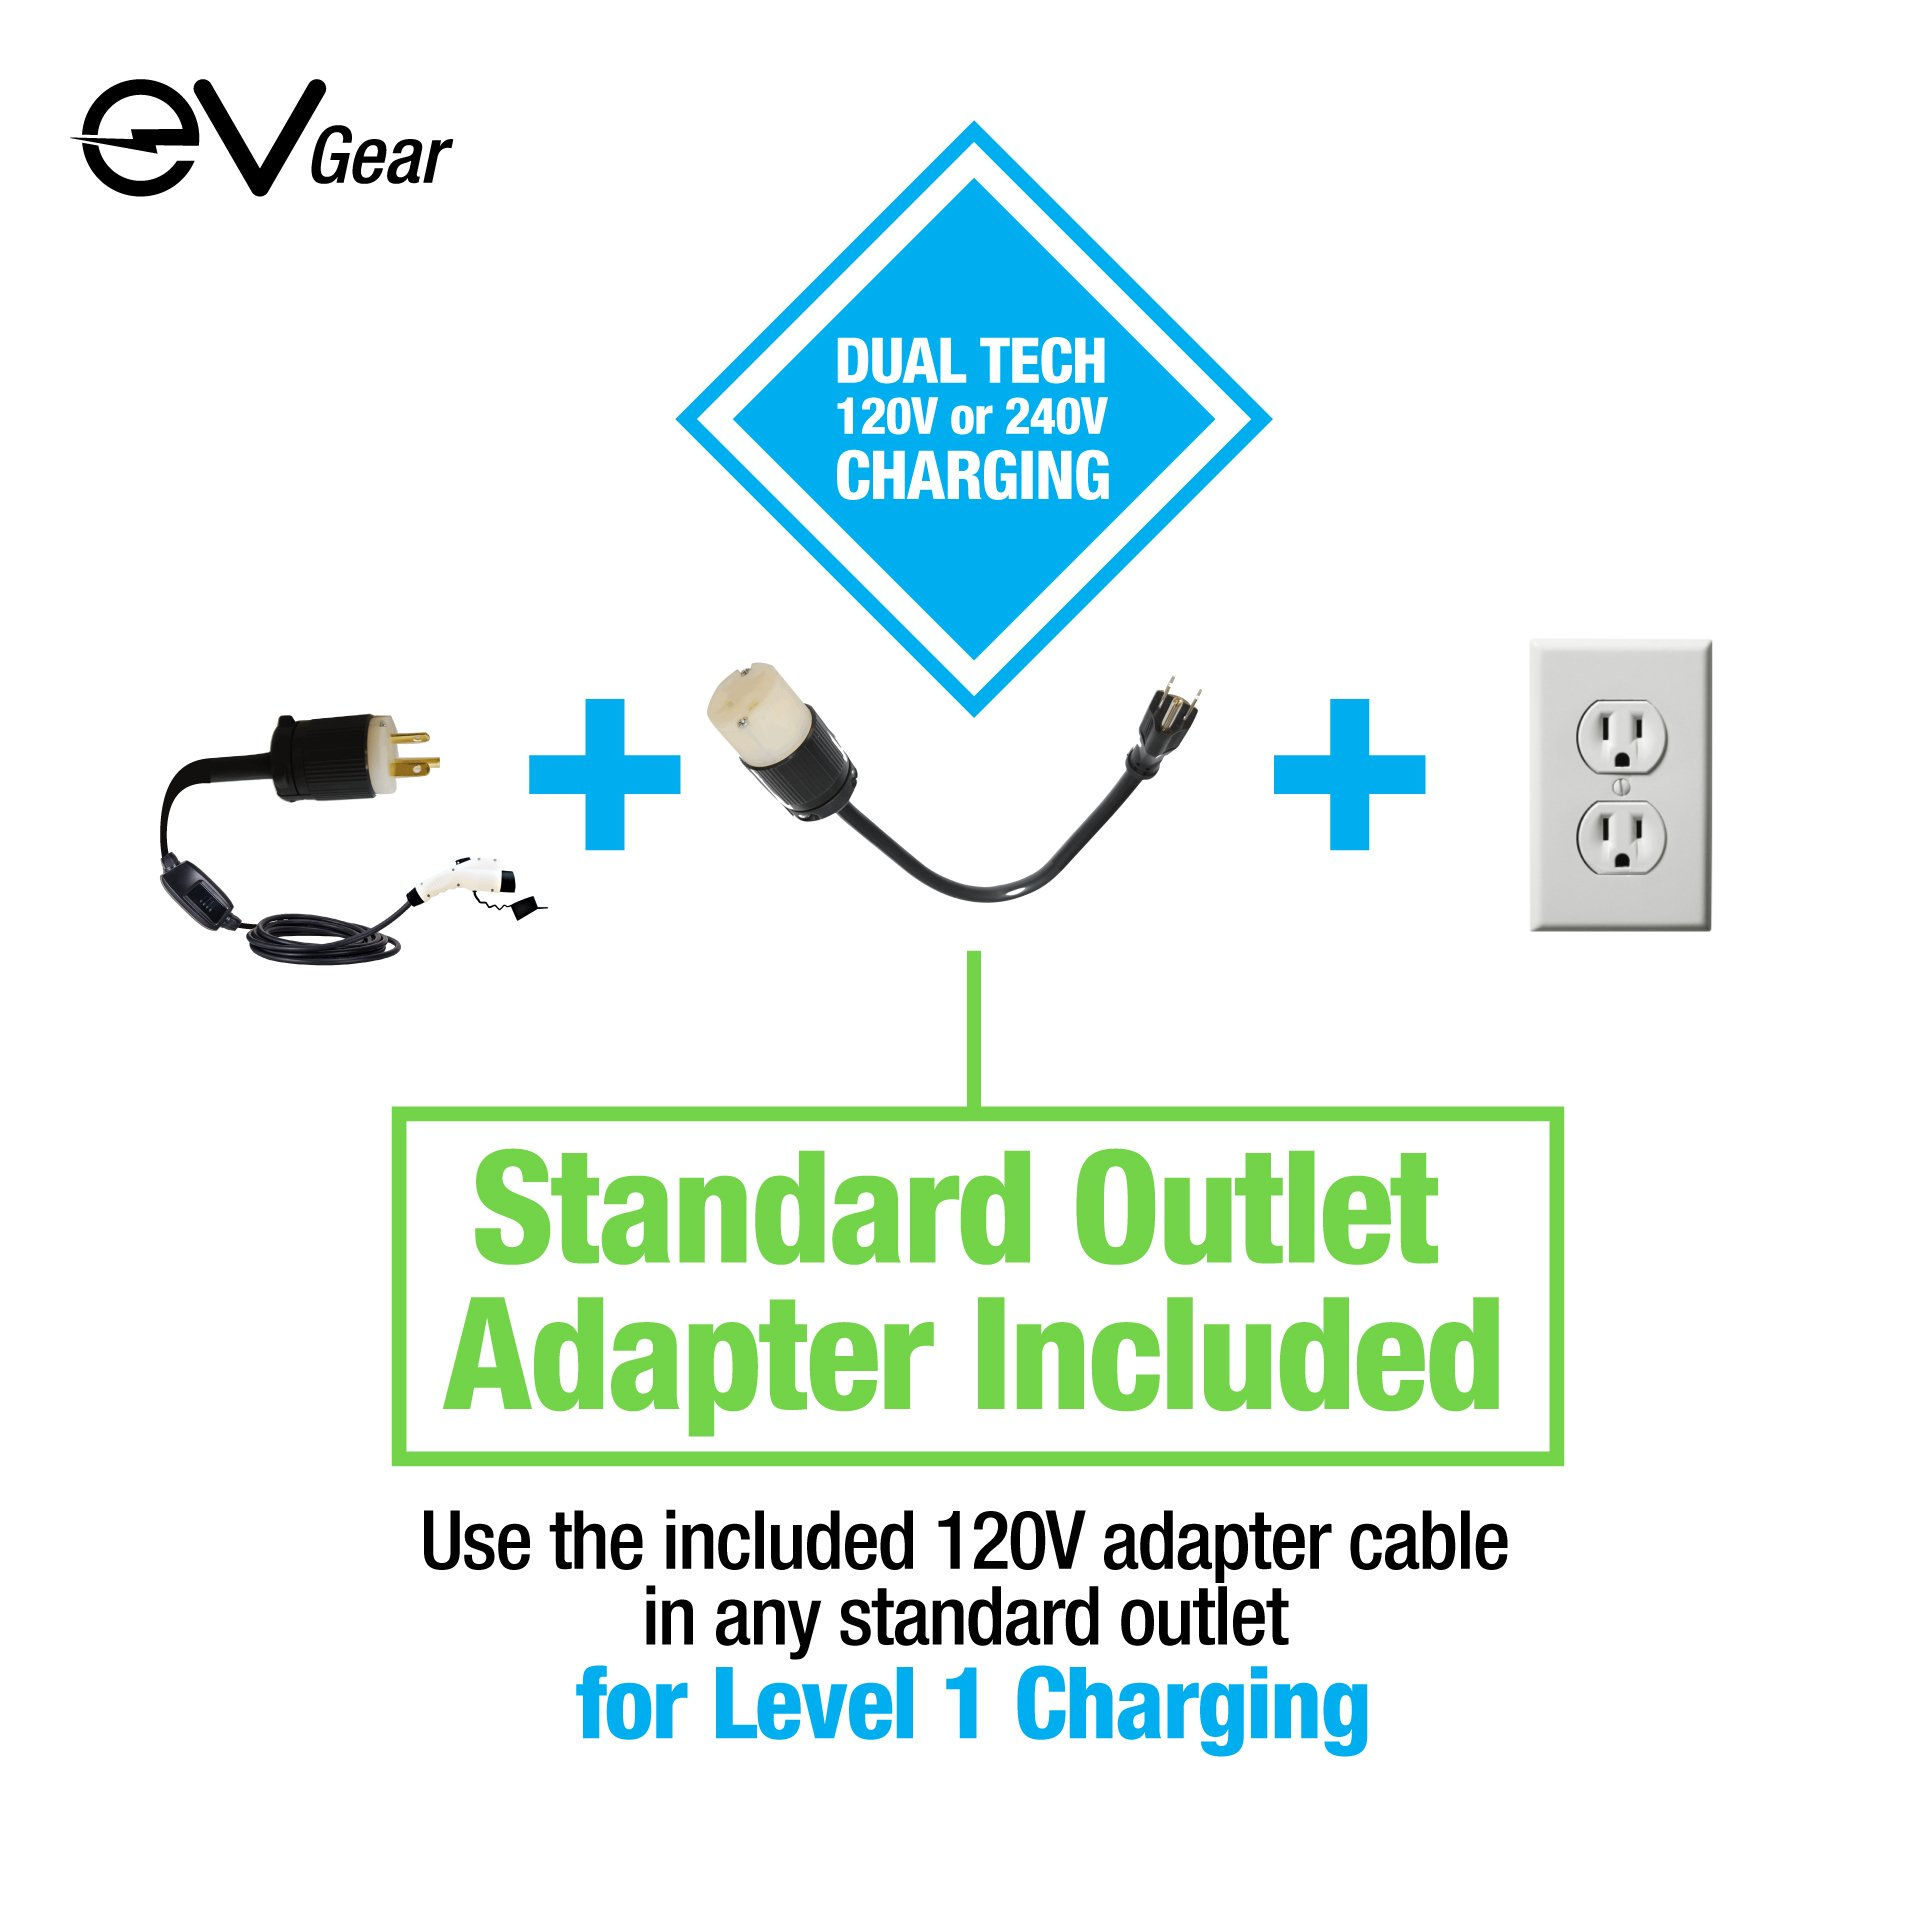 Level 2 EV Charger by EV Gear | 30 ft Portable Plug-In Charger, 110v - 240v | Includes Level 1 Adapter | Works with all Electric & Hybrid Cars such as Chevy Volt/Bolt, Nissan Leaf, Prius Prime, Tesla by EV Gear (Image #5)